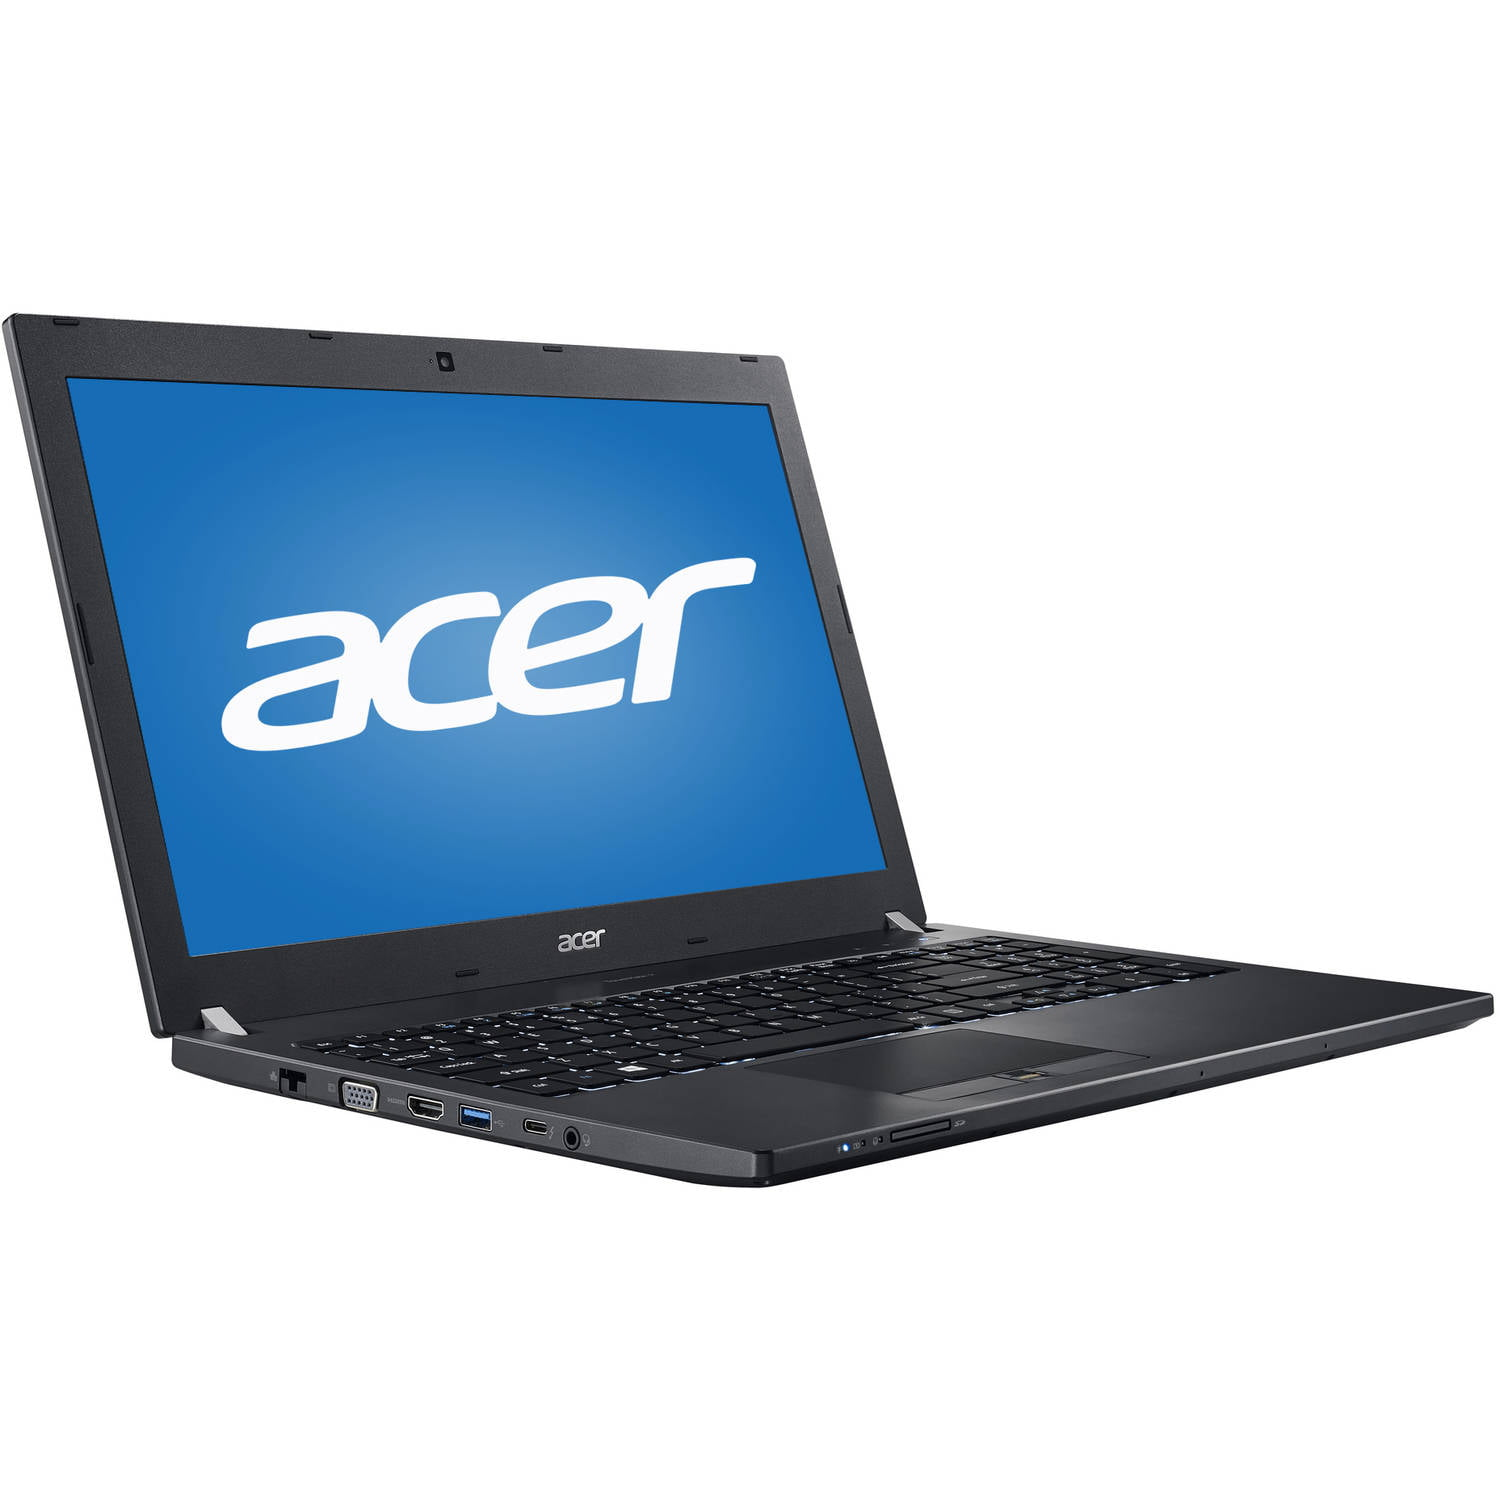 "Acer TravelMate P658-M 15.6"" Laptop, Windows 7 Professional, Intel Core i5-6300U Processor, 8GB RAM,... by Acer"